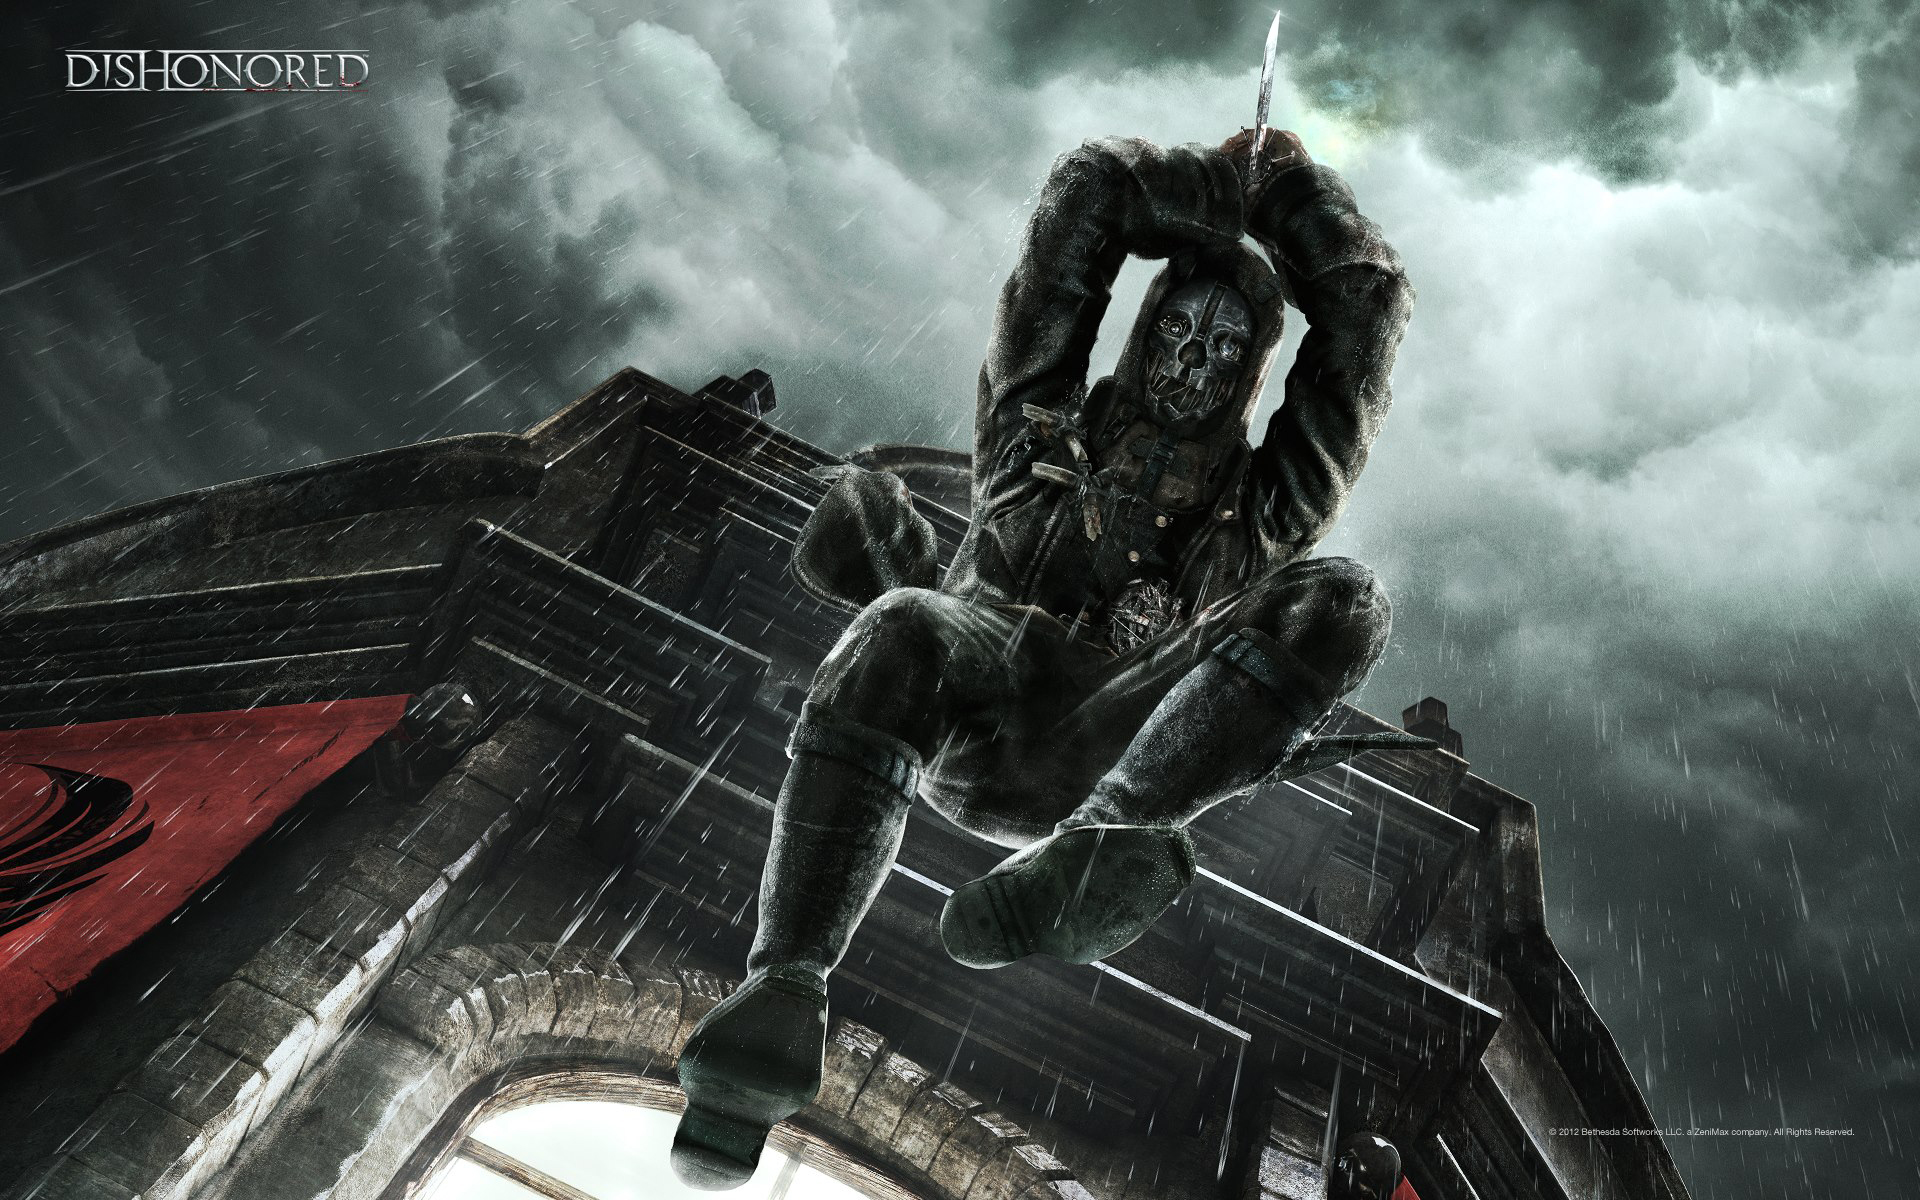 Dishonored Video Game Wallpapers HD Wallpapers 1920x1200